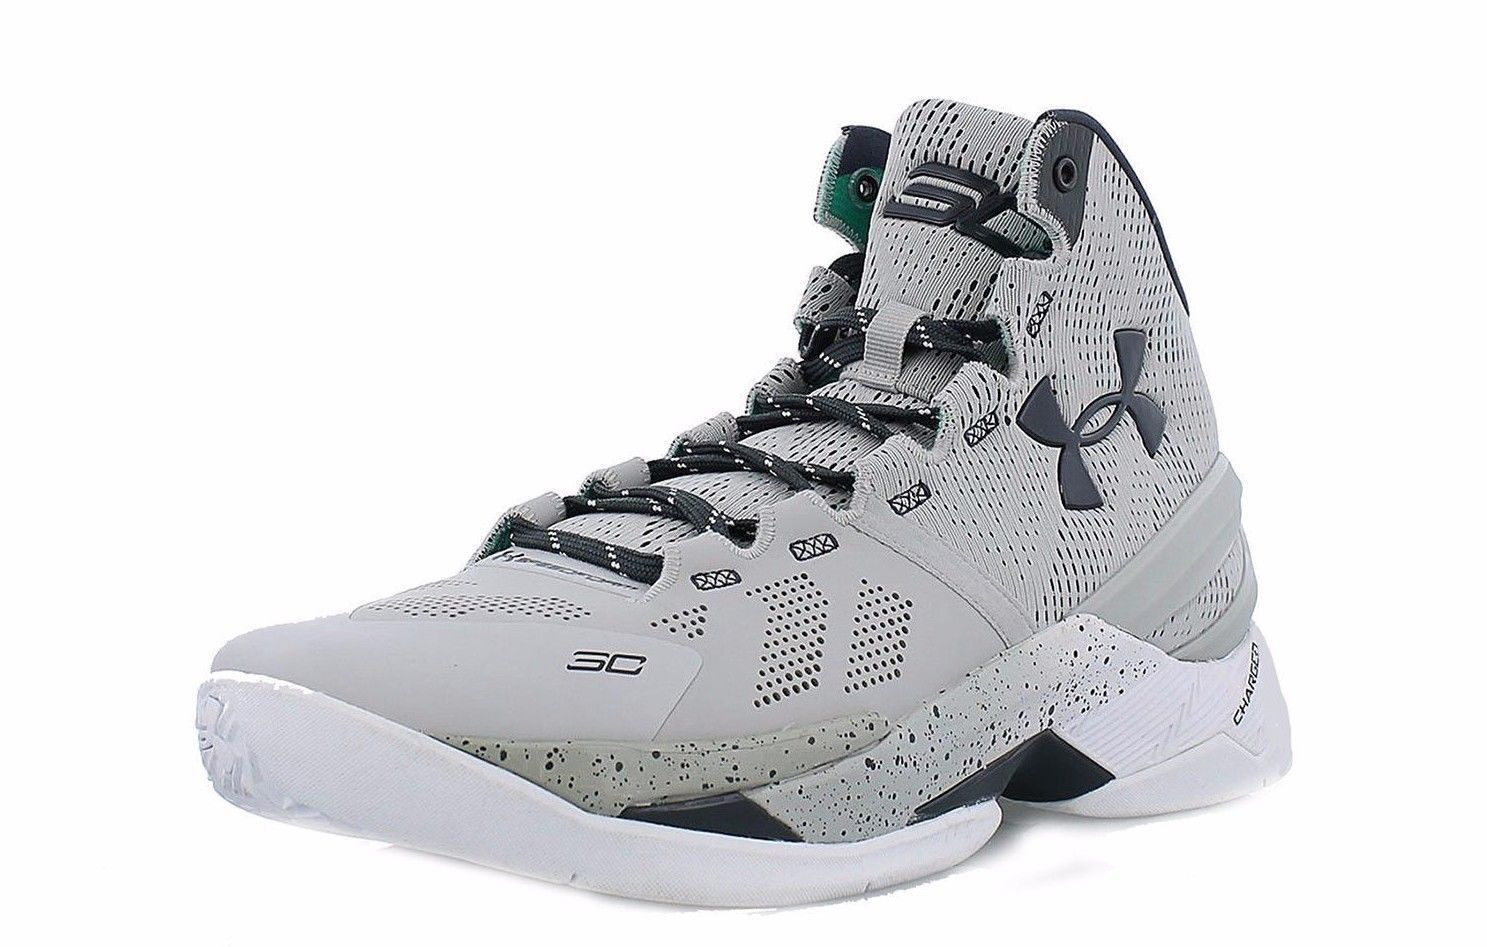 fdce0daa39fc New Men s Under Armour Steph Curry